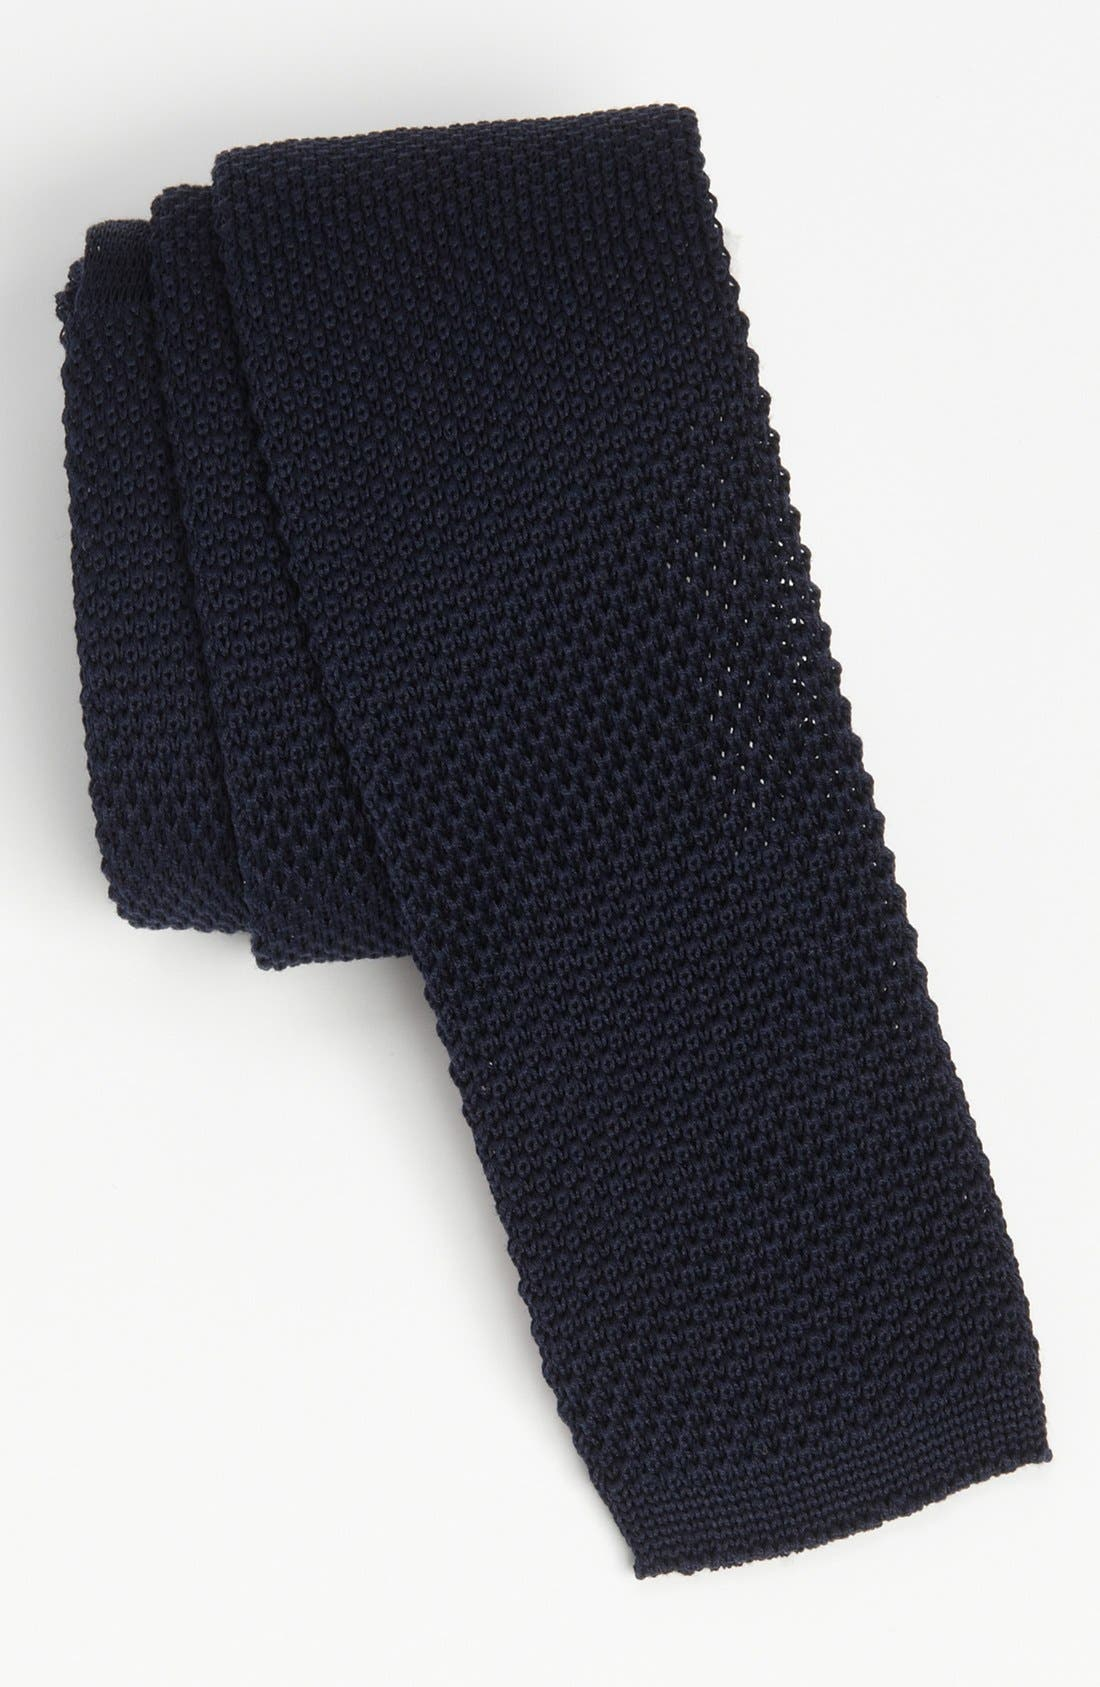 Main Image - BOSS HUGO BOSS Knit Tie